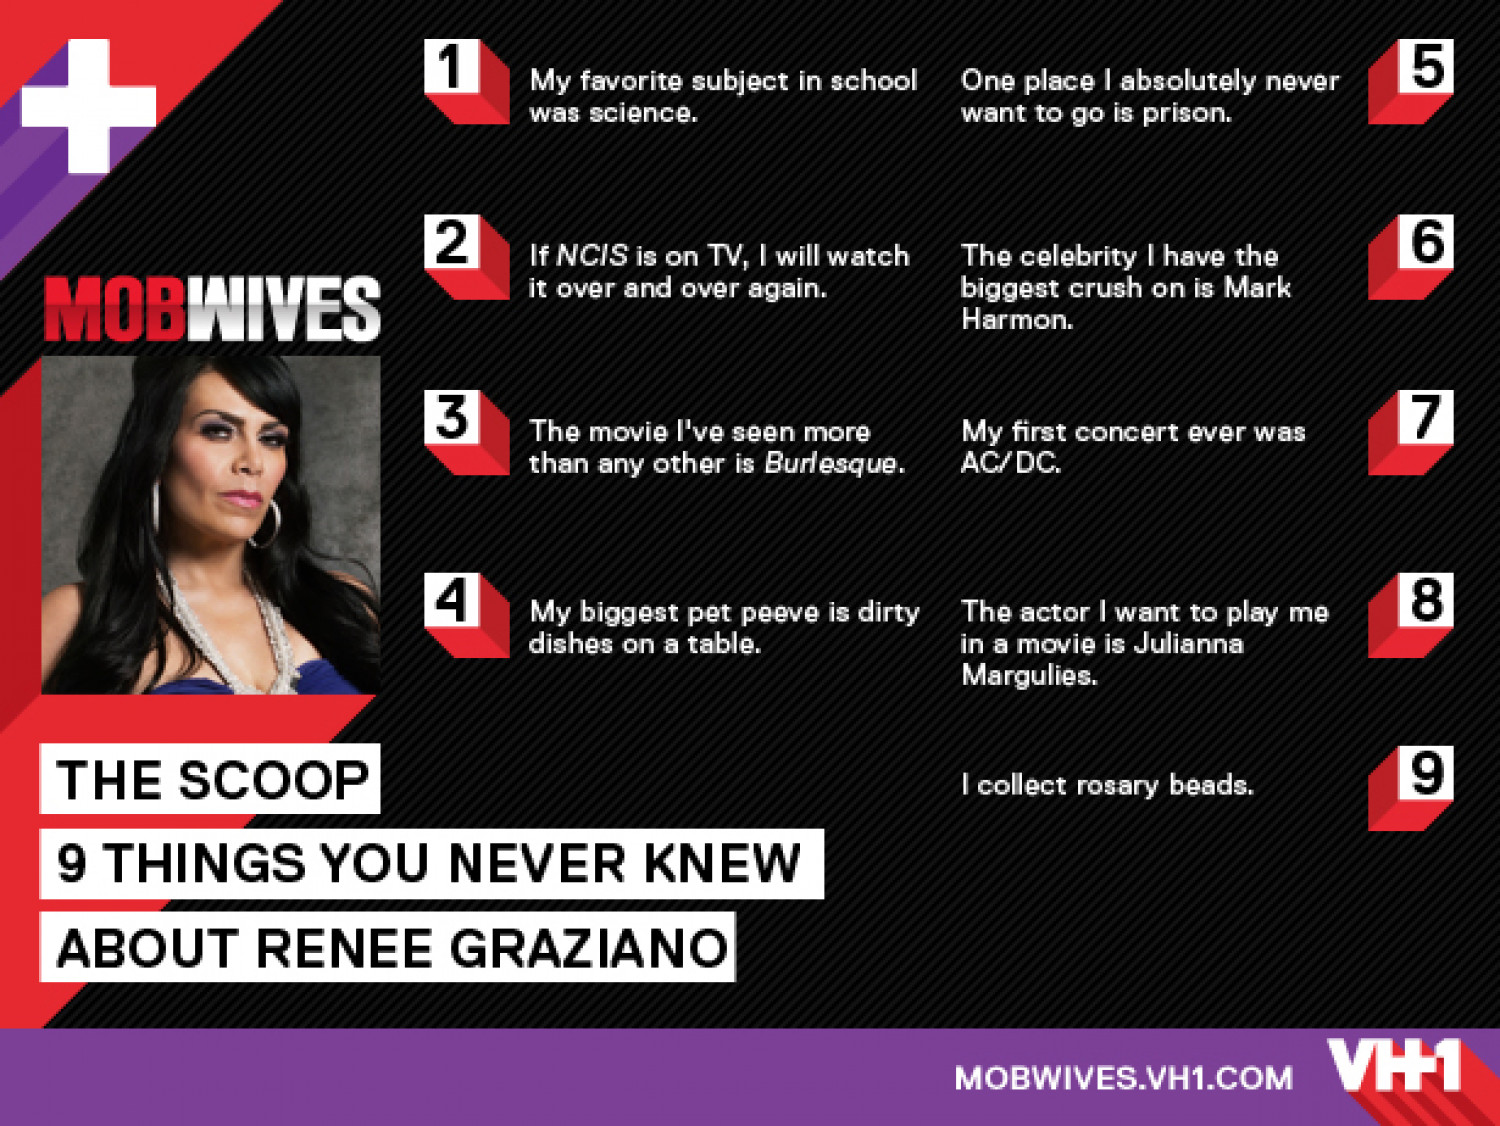 VH1 Mob Wives Infographic: Renee Graziano Infographic